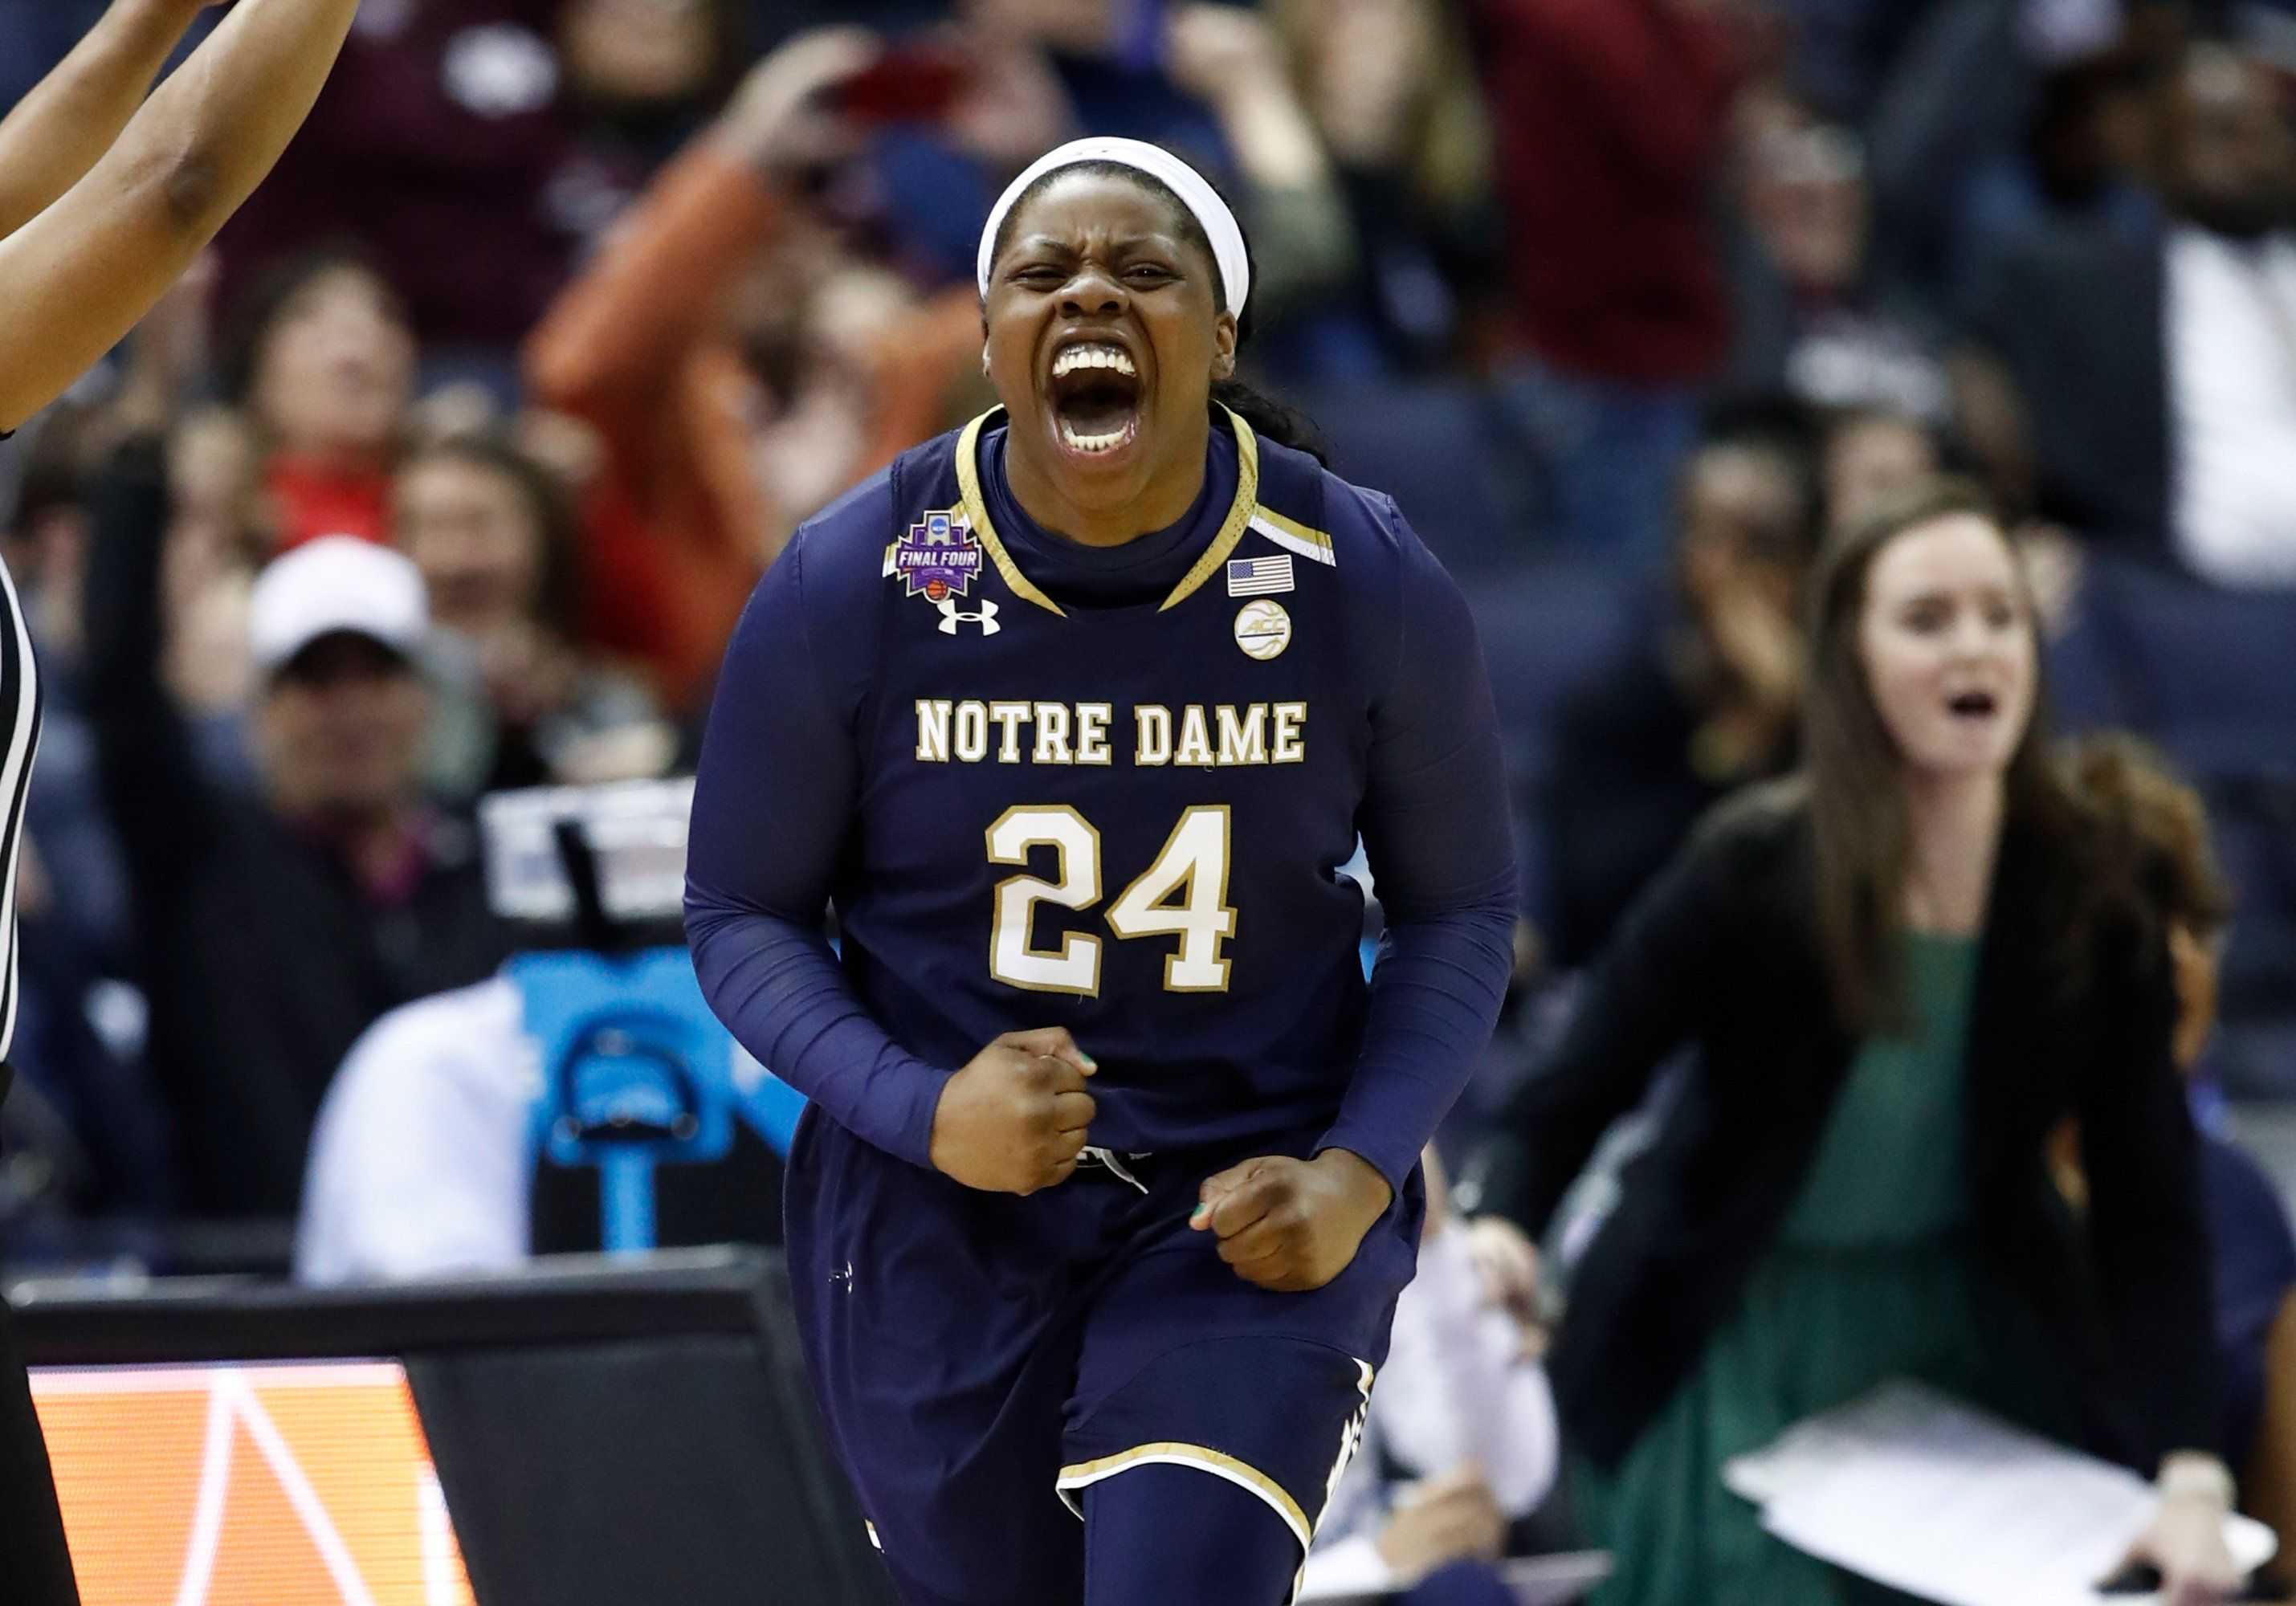 COLUMBUS, OH - MARCH 30:  Arike Ogunbowale #24 of the Notre Dame Fighting Irish celebrates after hitting a three point basket against the Notre Dame Fighting Irish late in the second half in the semifinals of the 2018 NCAA Women's Final Four at Nationwide Arena on March 30, 2018 in Columbus, Ohio. The Notre Dame Fighting Irish defeated the Connecticut Huskies 91-89.  (Photo by Andy Lyons/Getty Images)